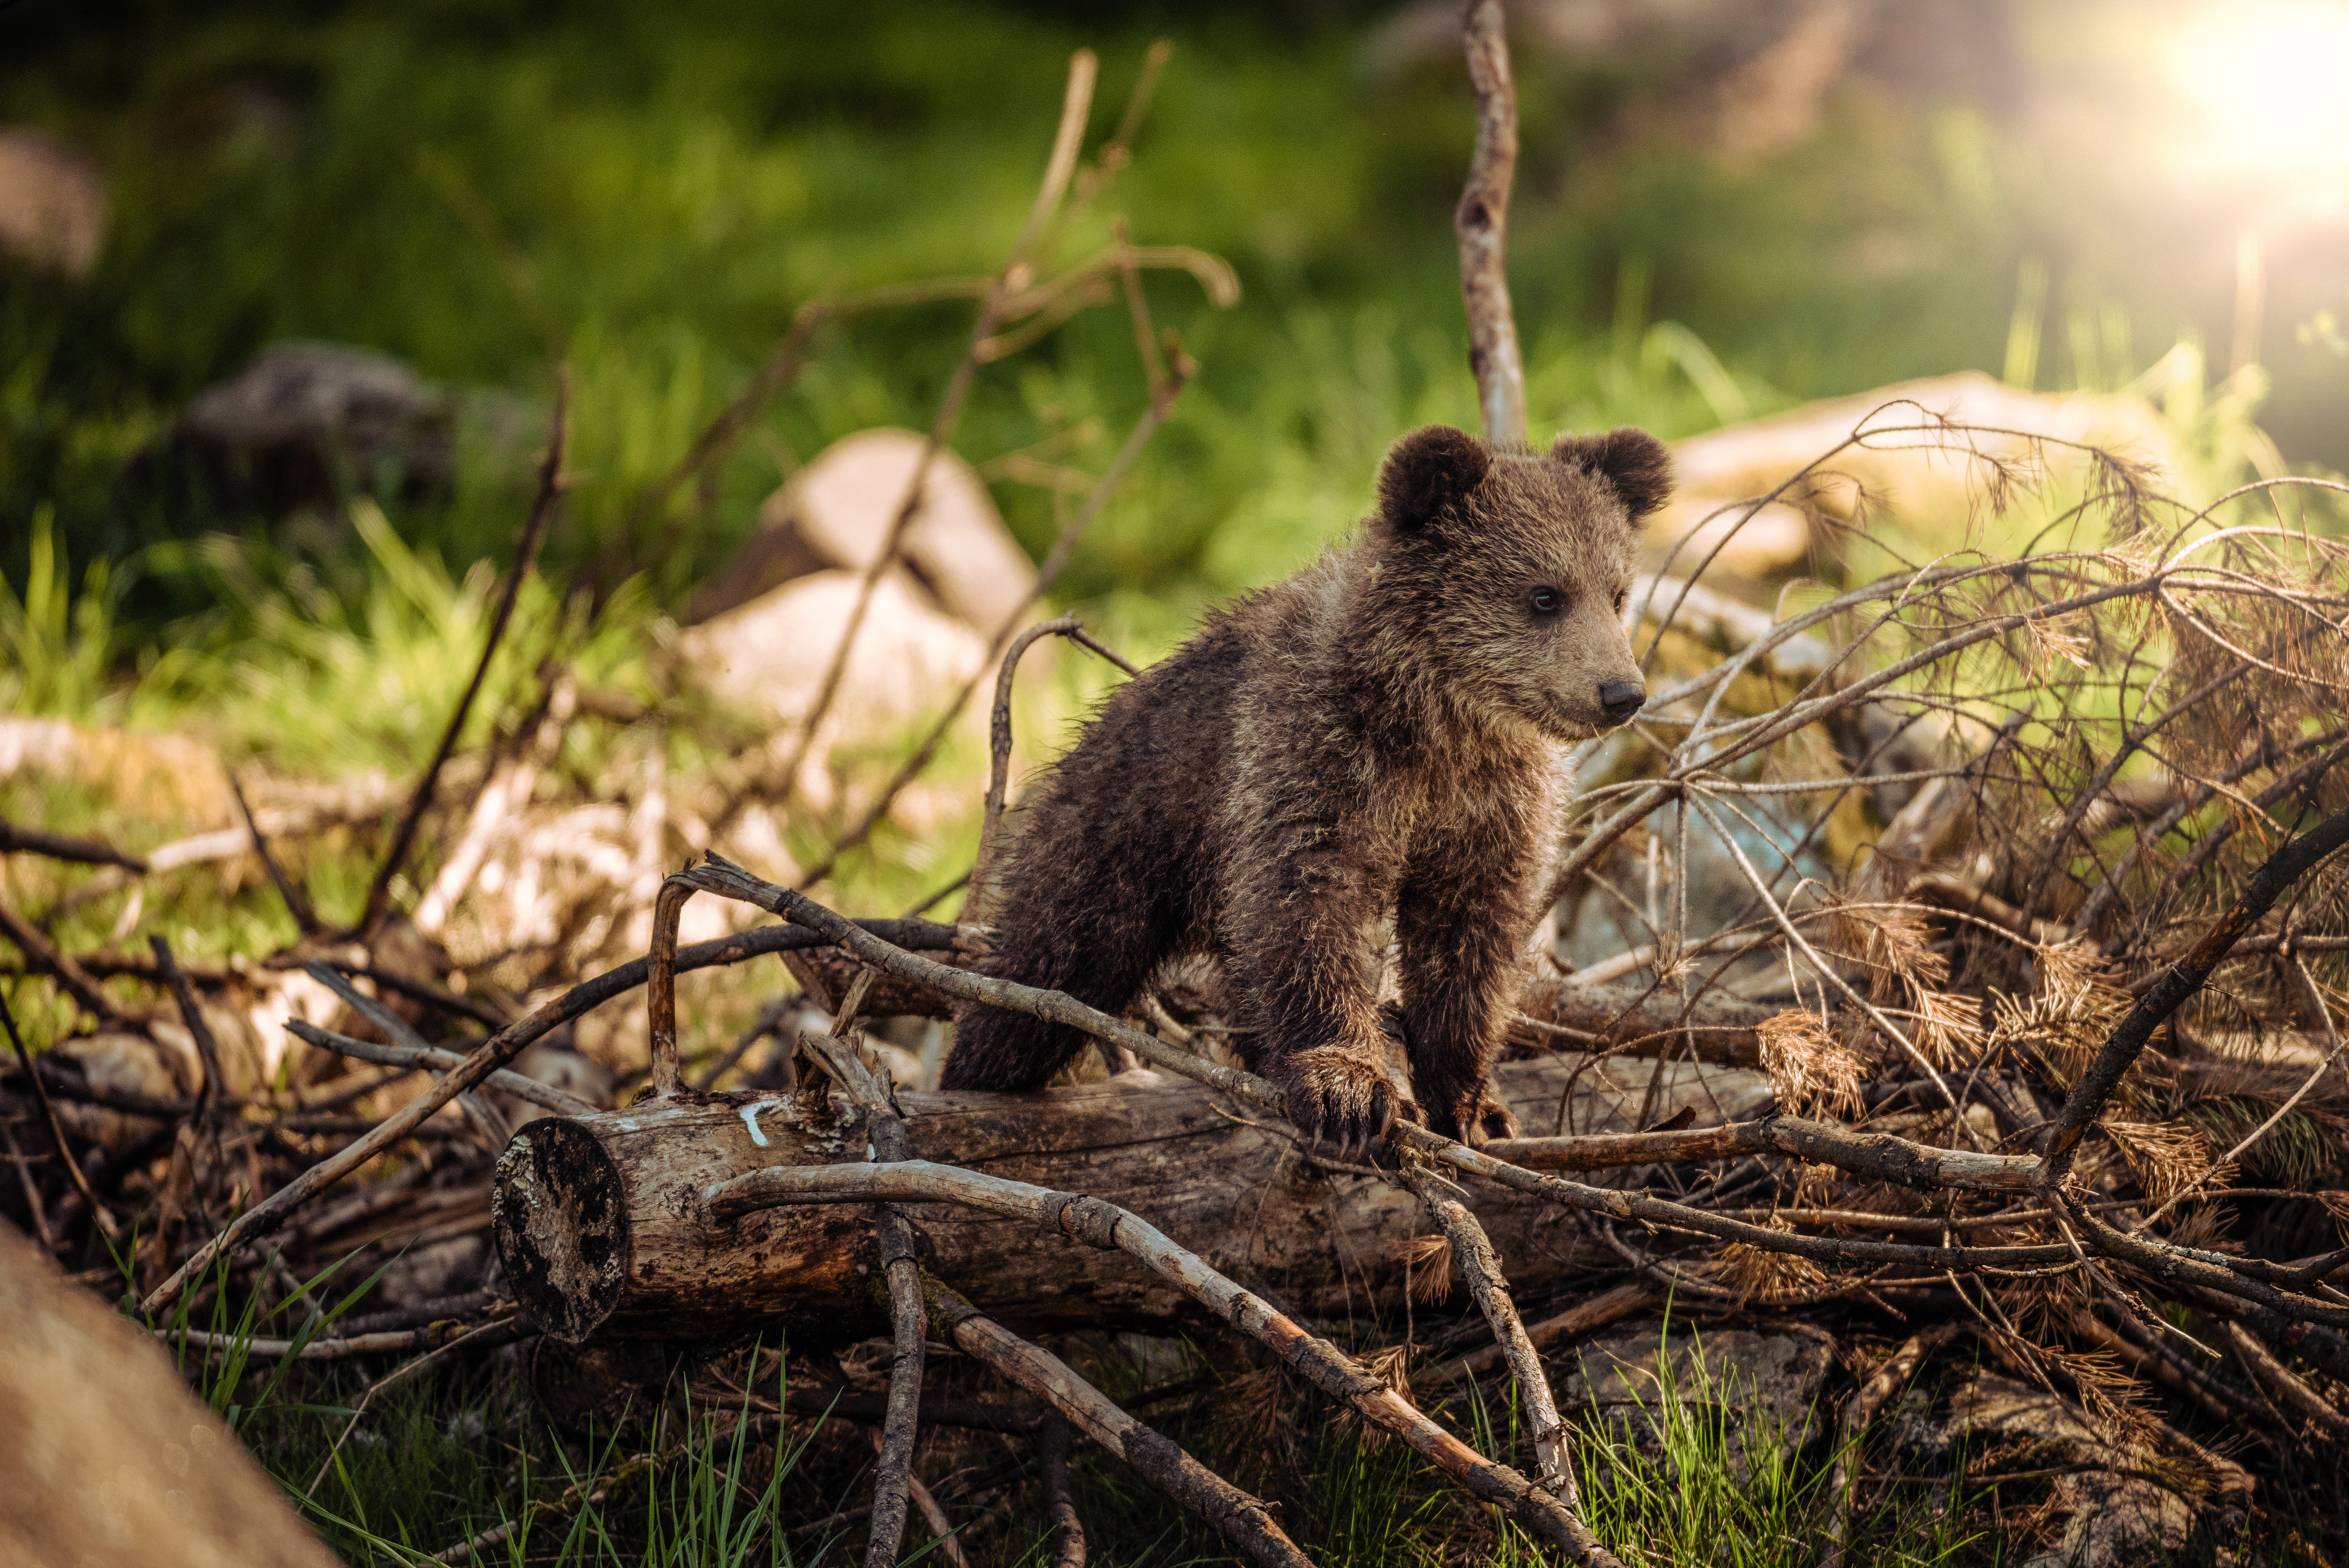 Cute Teddy Bears Wallpapers Hd 167 Incredible Bear Pictures 183 Pexels 183 Free Stock Photos